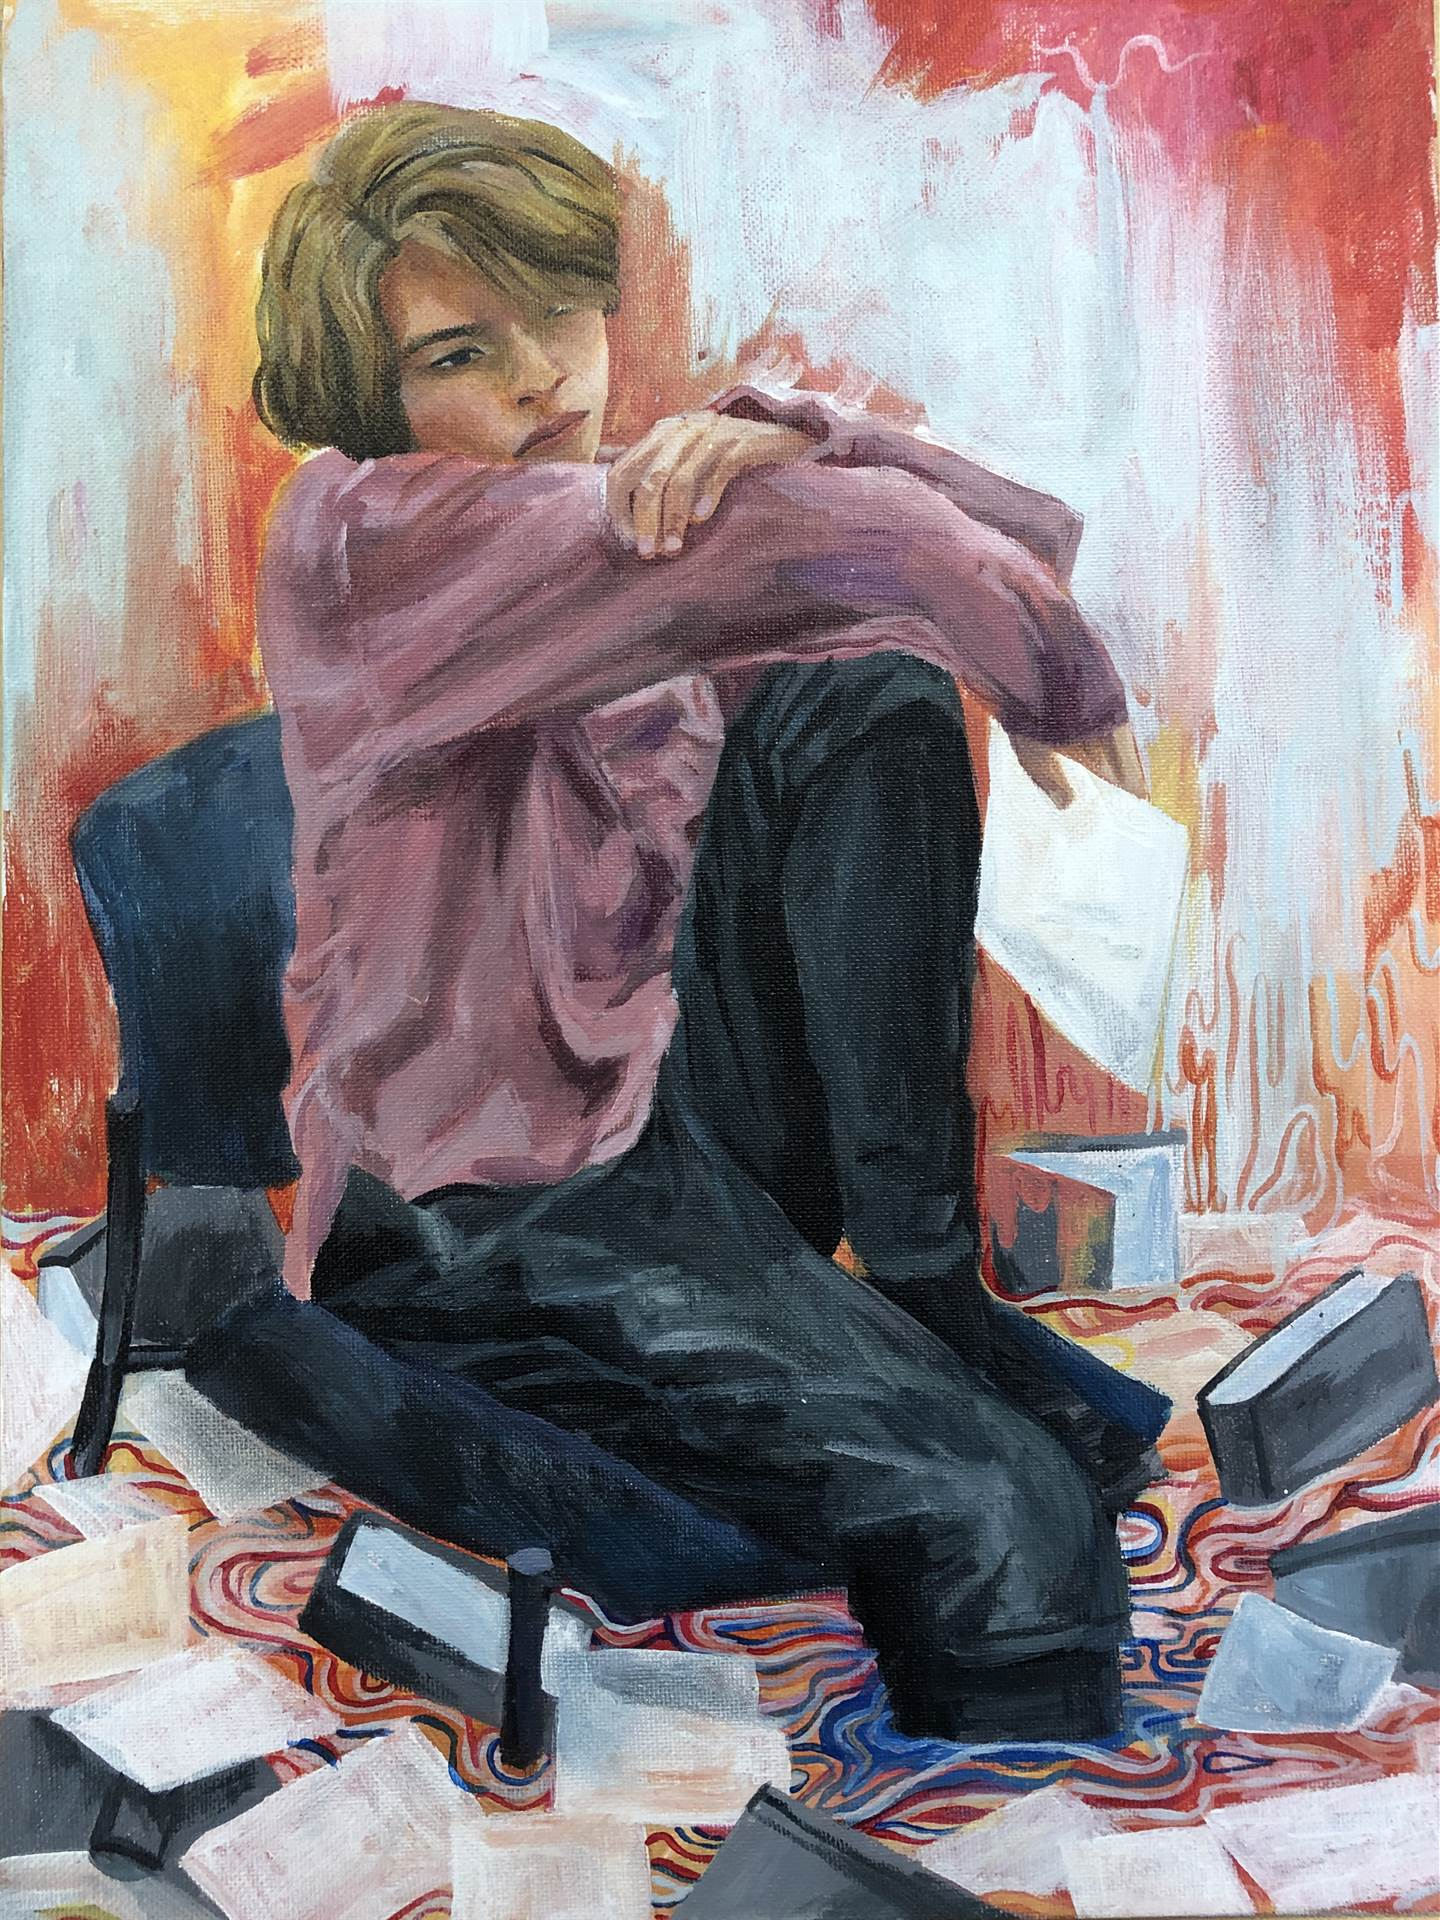 Painting of Girl in Chair